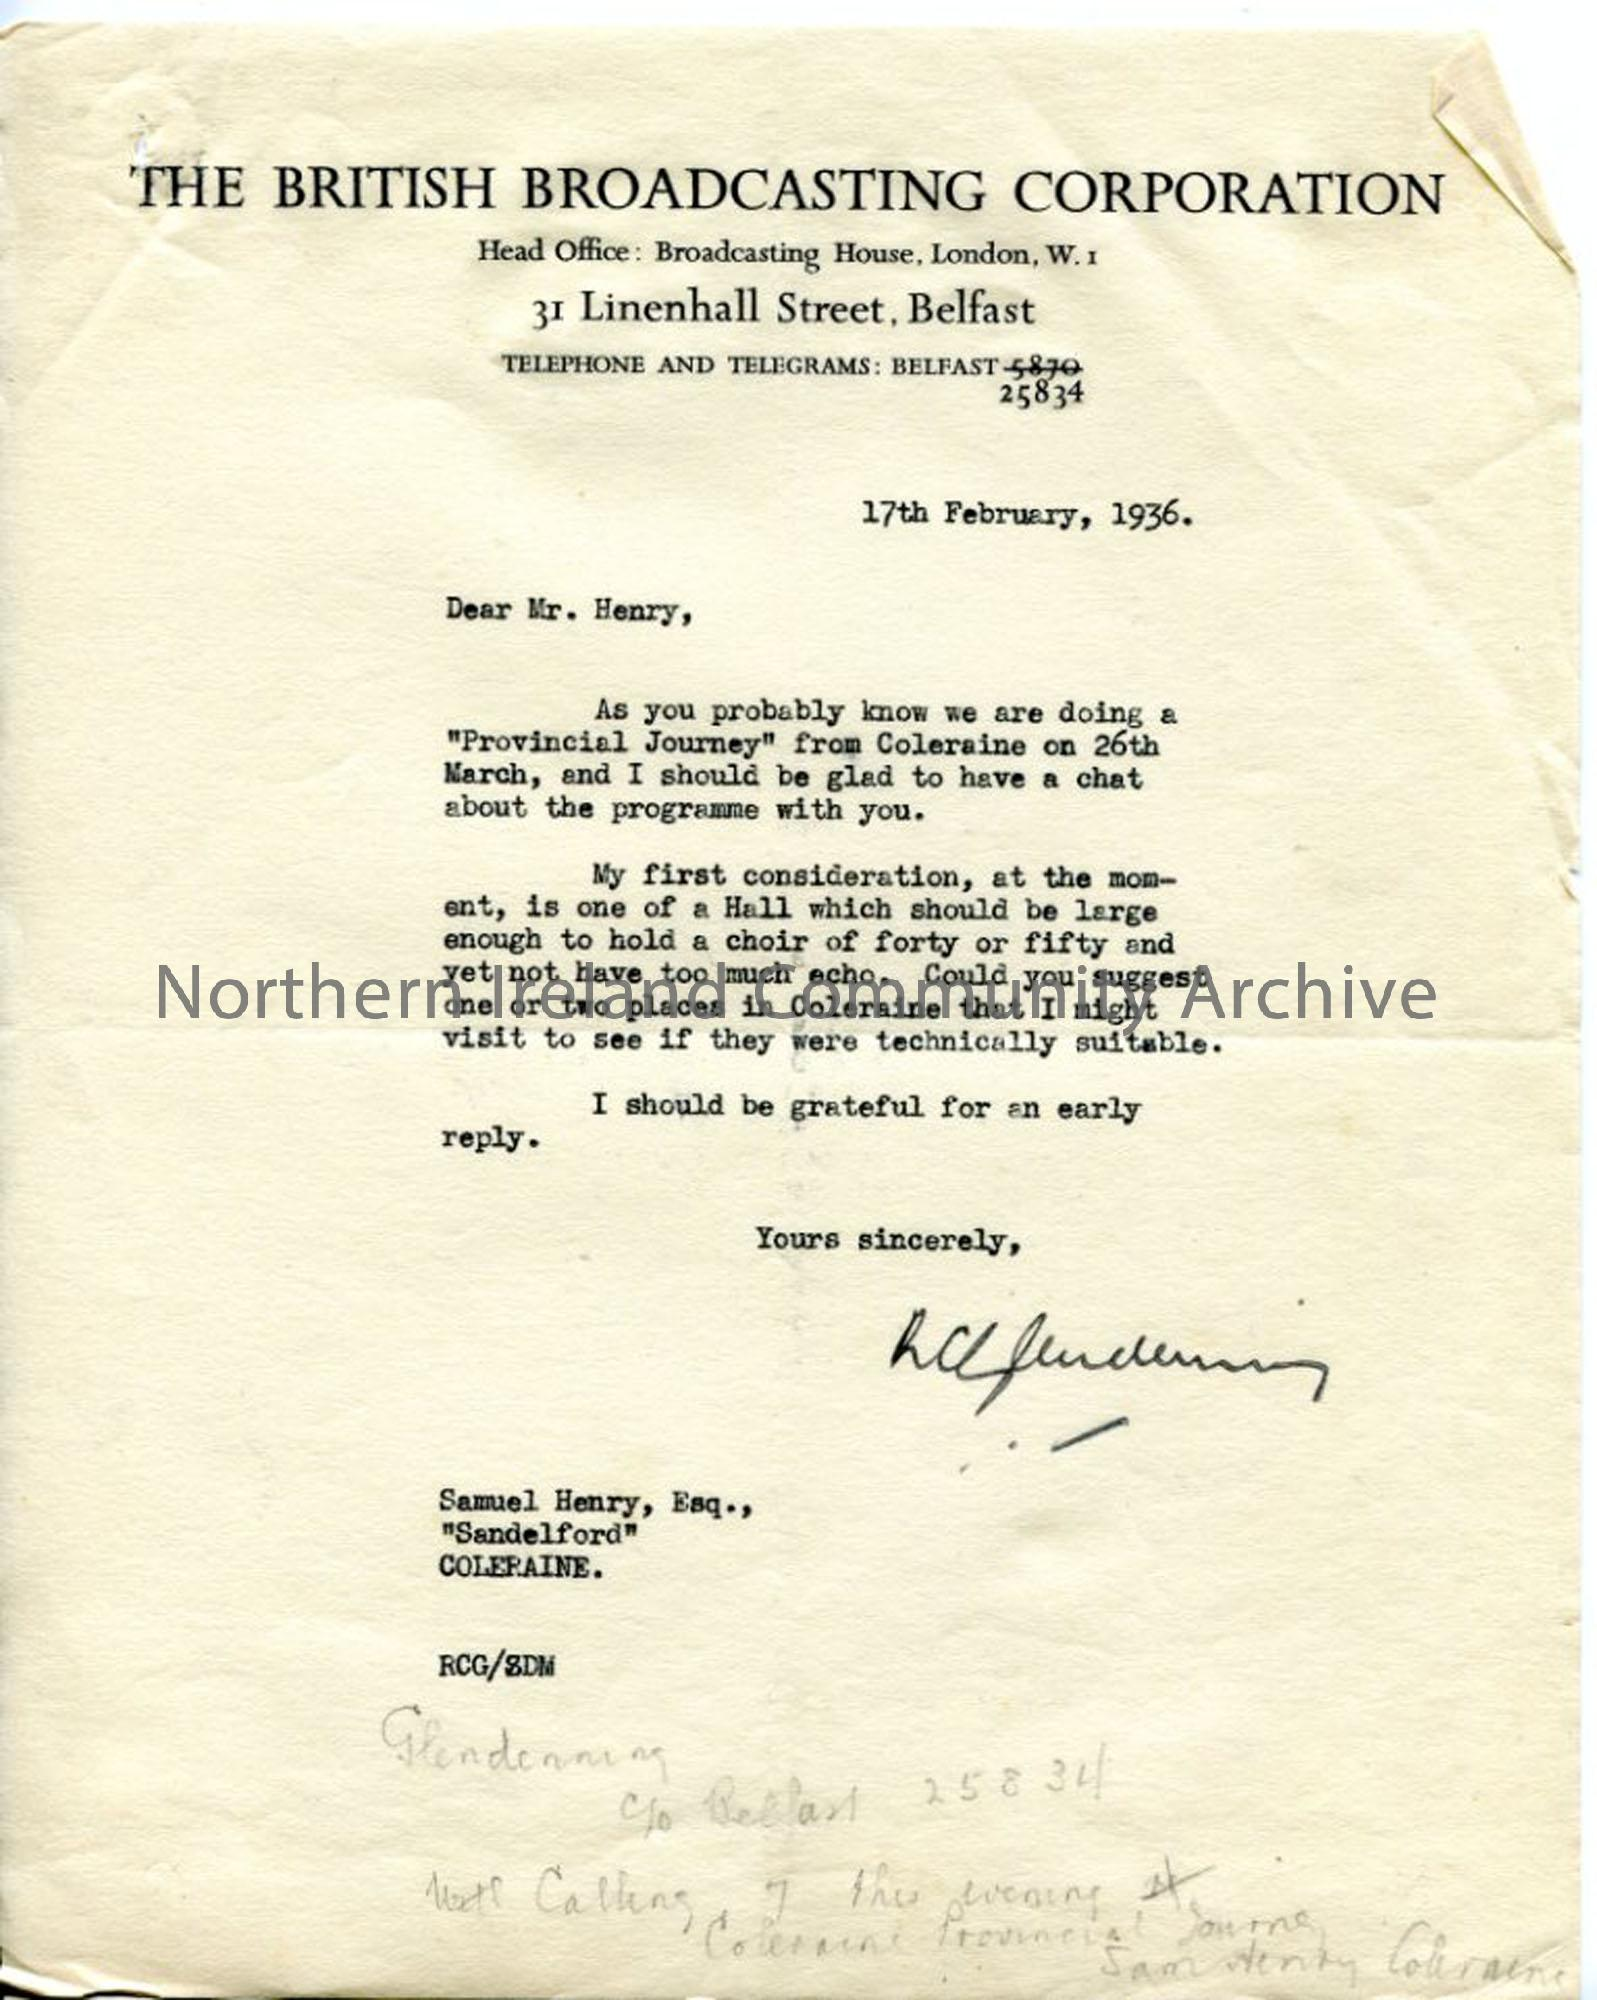 Letter from R C Glendenning of the BBC, dated 17.2.1936